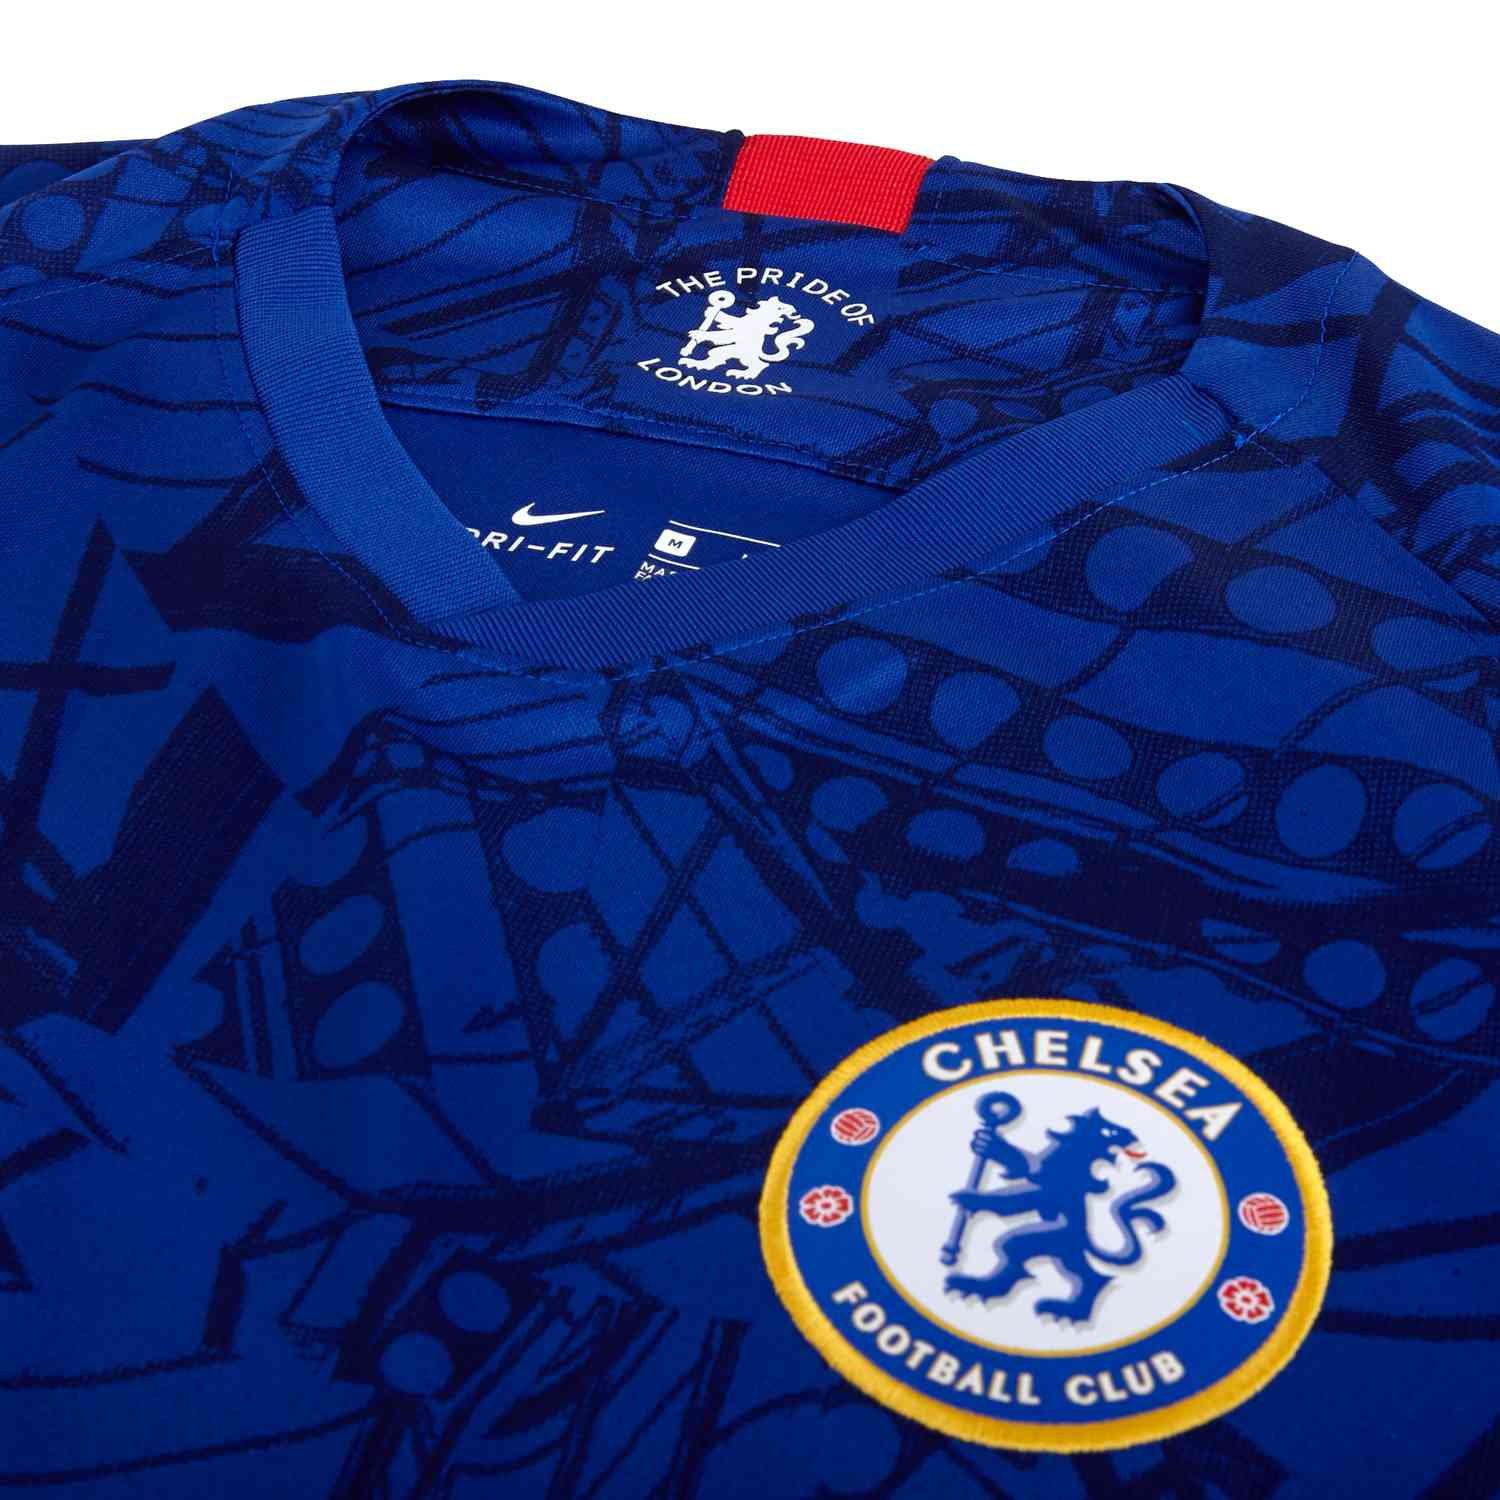 cheap for discount d7e1e 1175c 2019/20 Nike Chelsea Home Jersey - SoccerPro